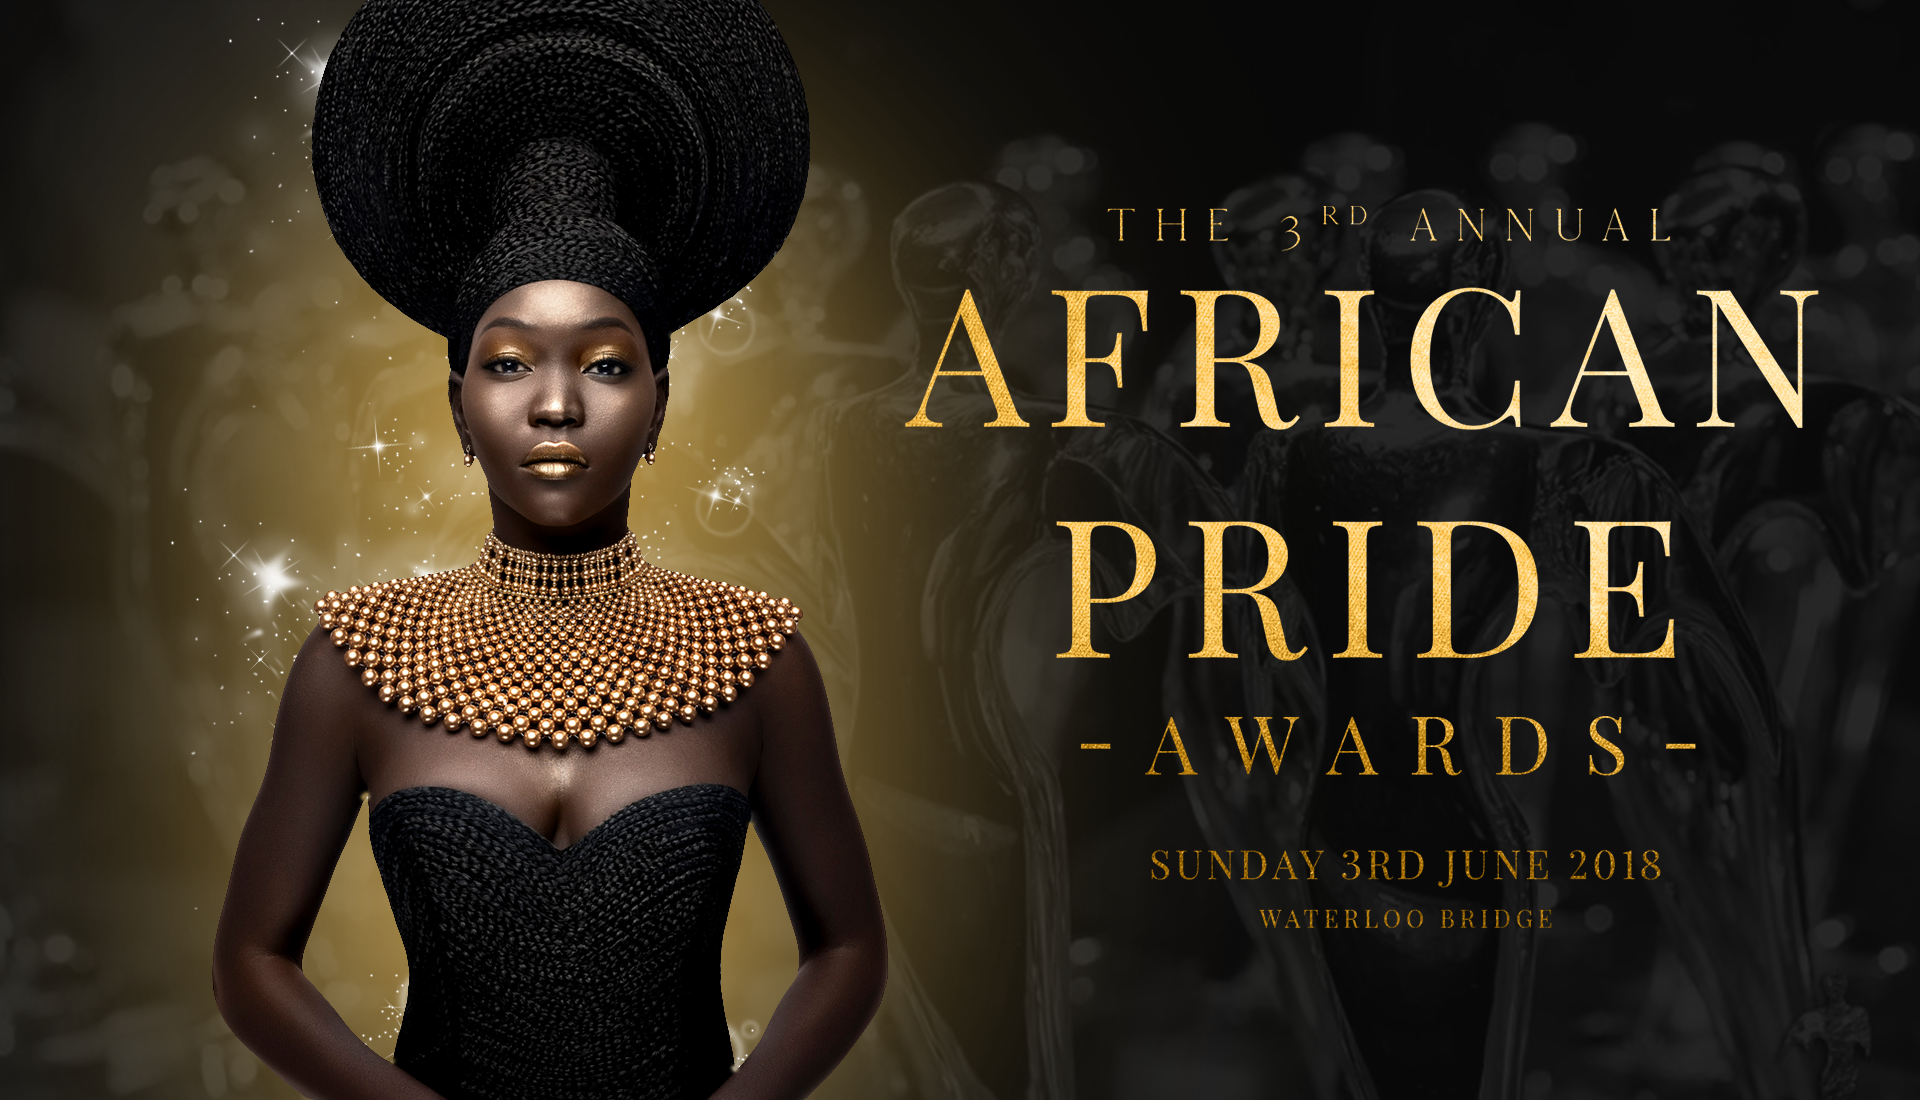 African Pride Awards 2018 | The Highly Anticipated Shortlist Nominees Announced